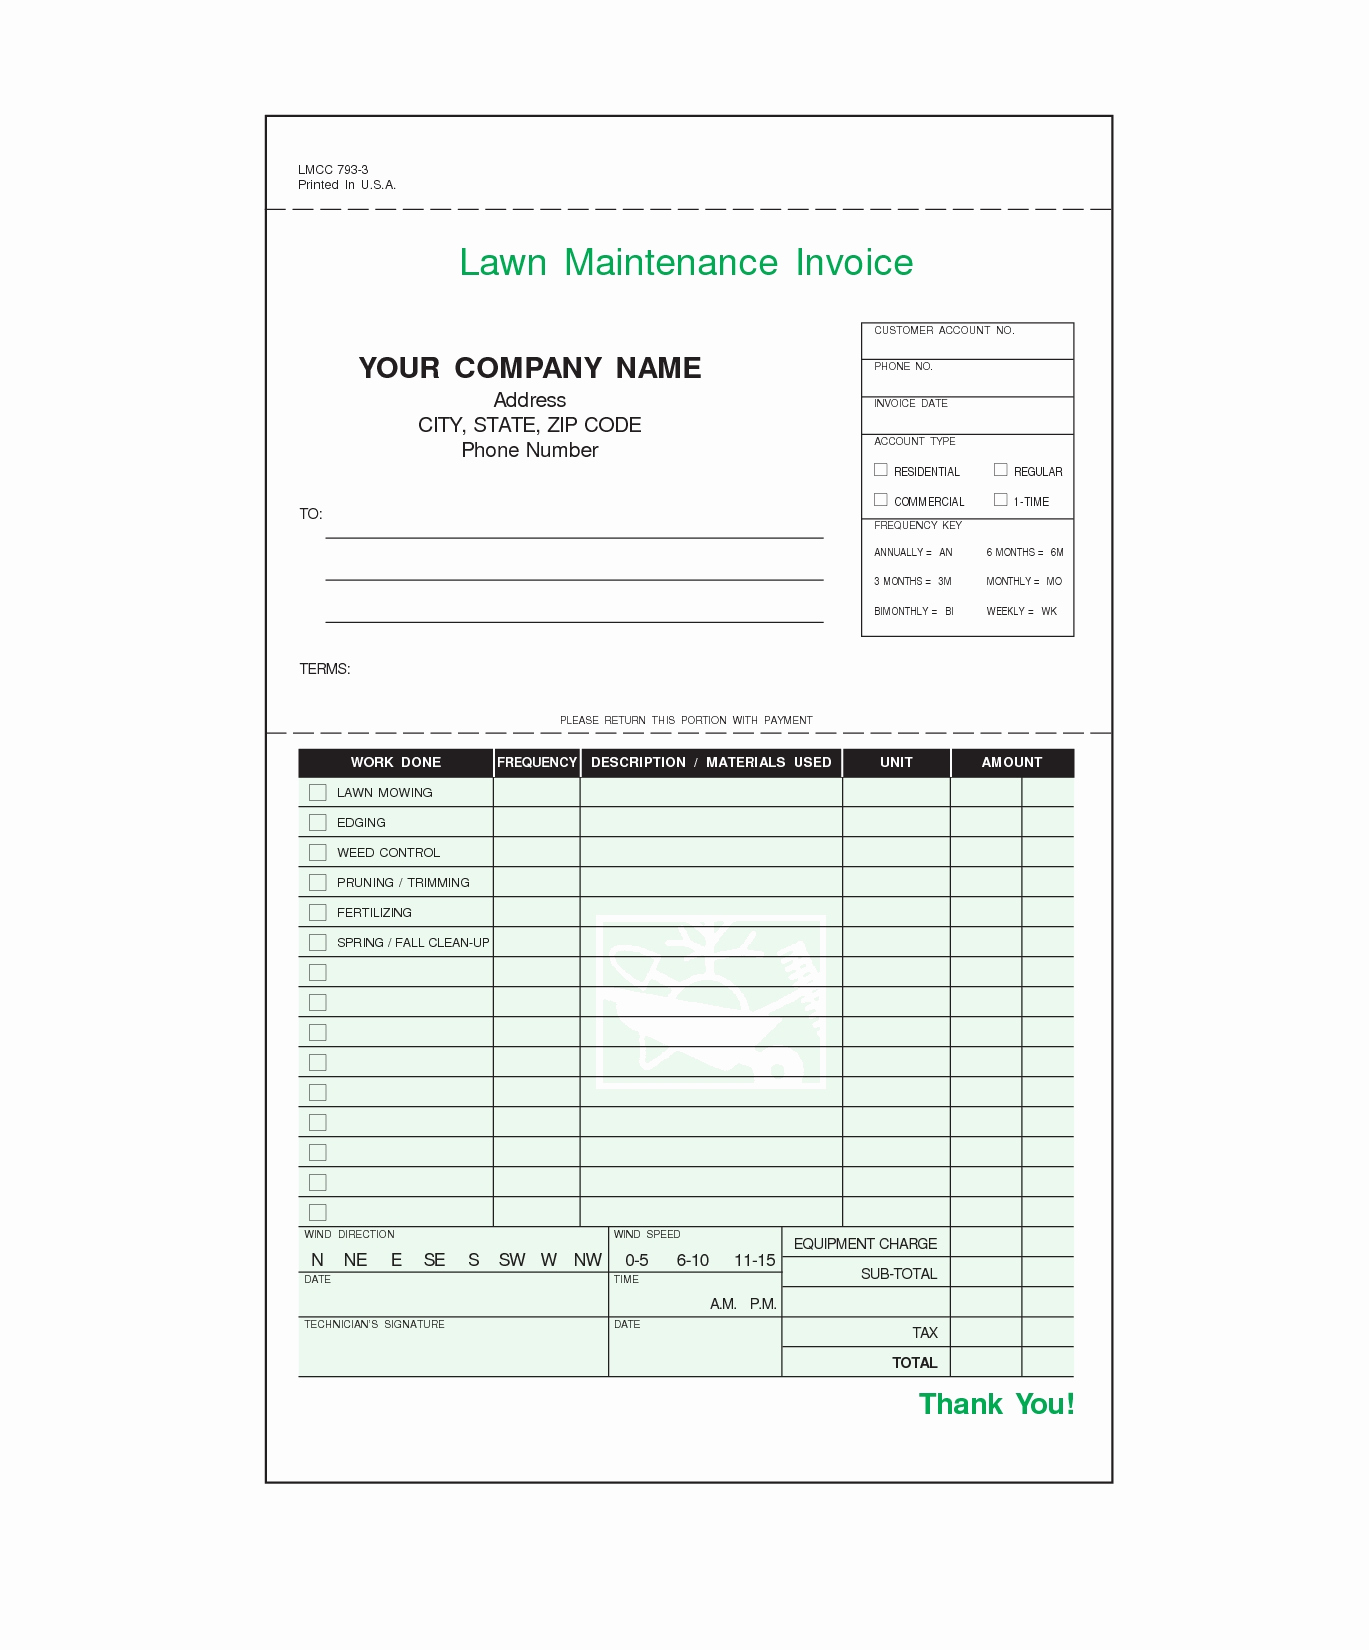 Lawn Service Invoice Template Excel Elegant Lawn Maintenance Invoice forms – Db Excel